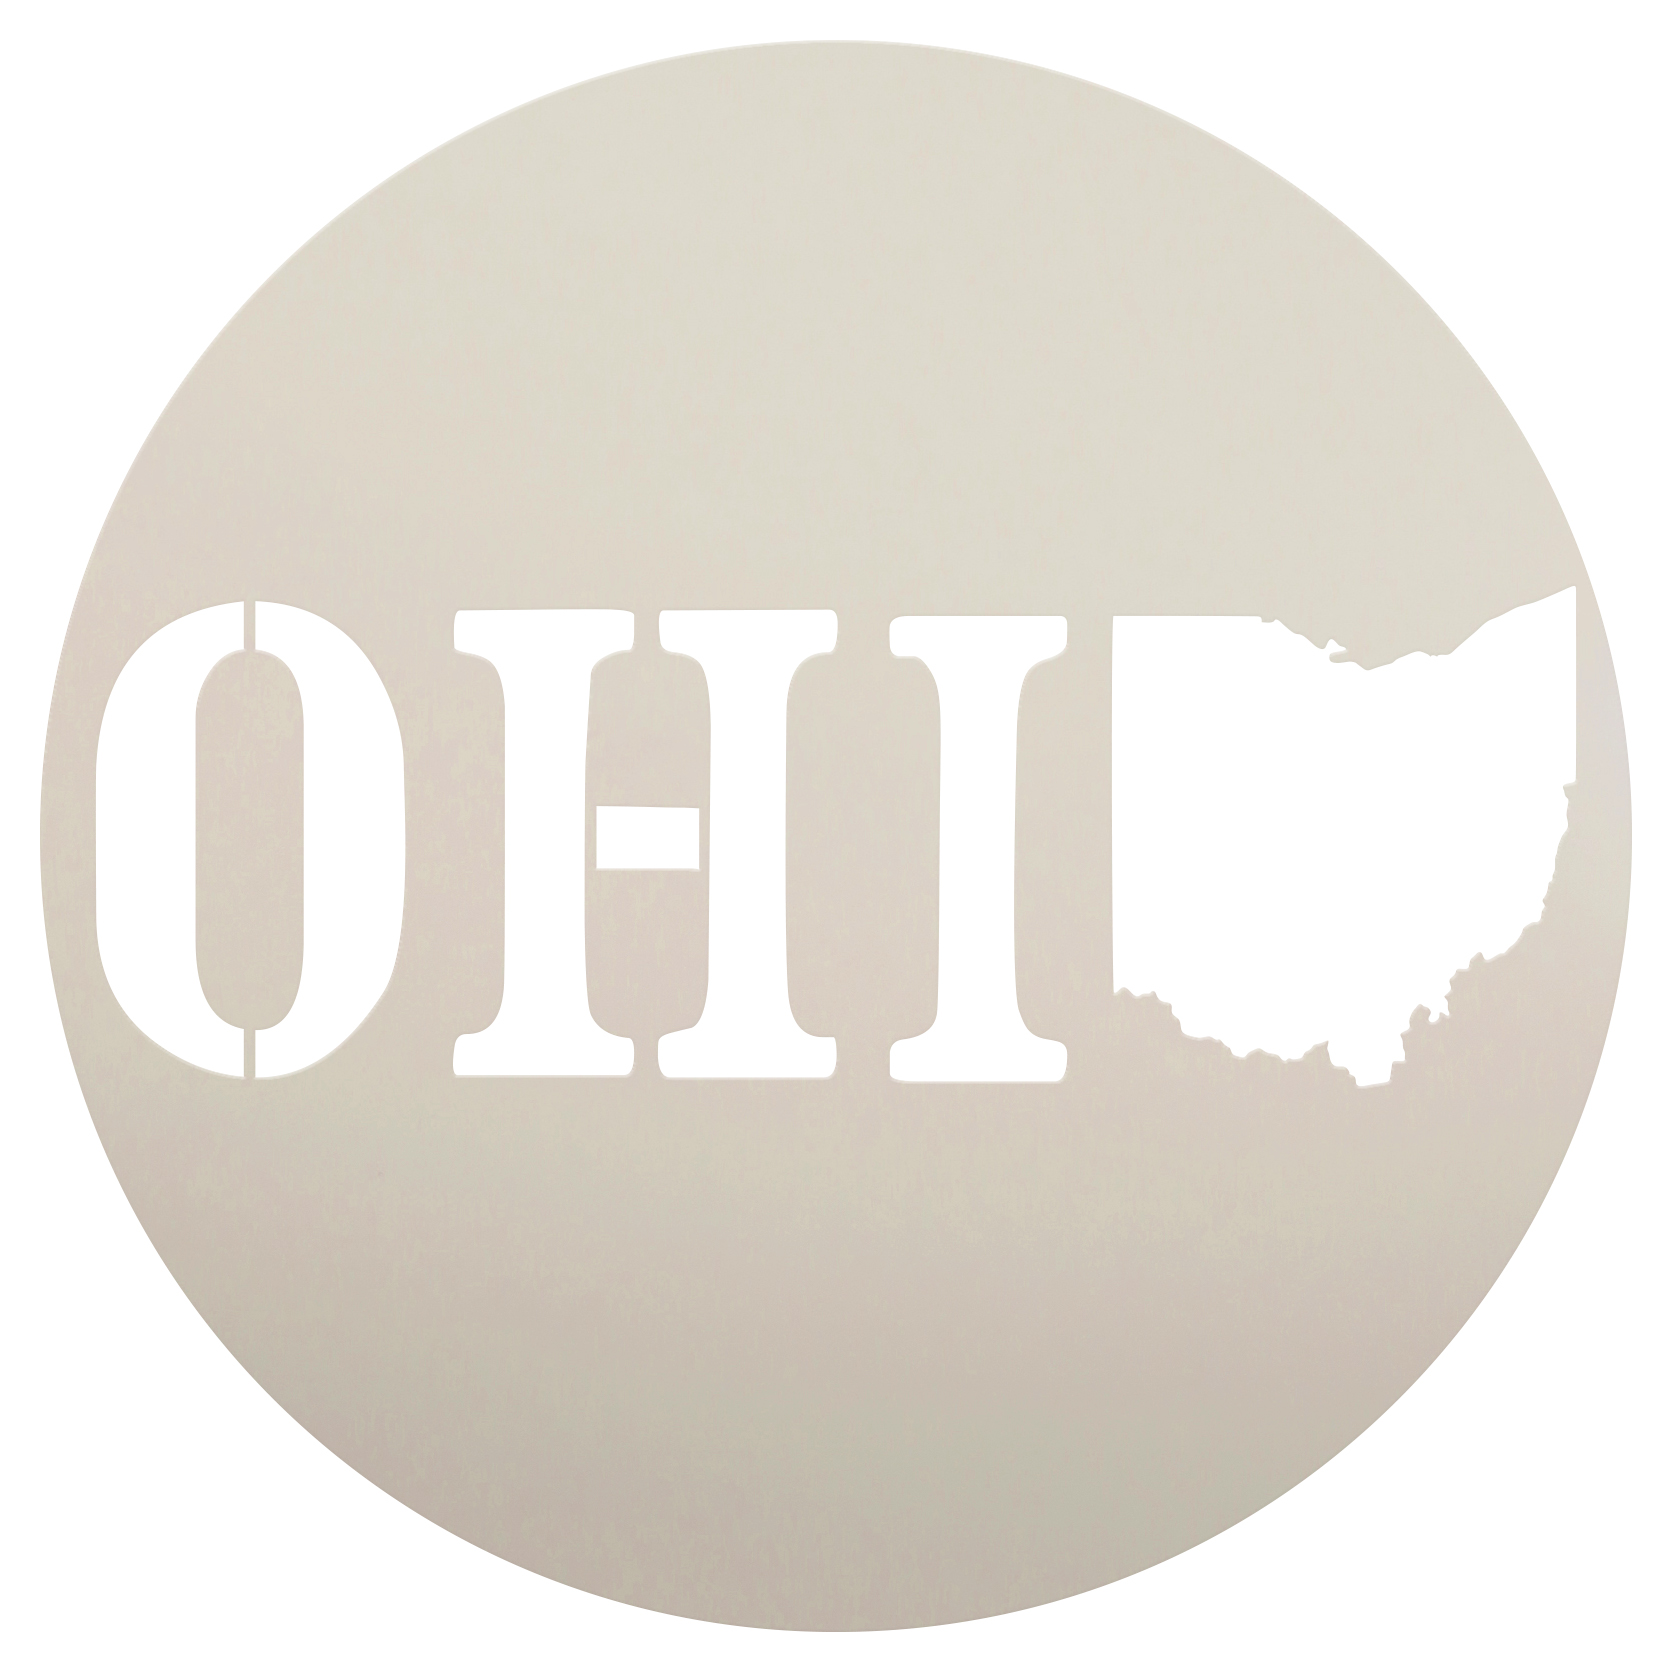 "State of Ohio Stencil |  by StudioR12 | Reusable Mylar Template | 12"" Round 